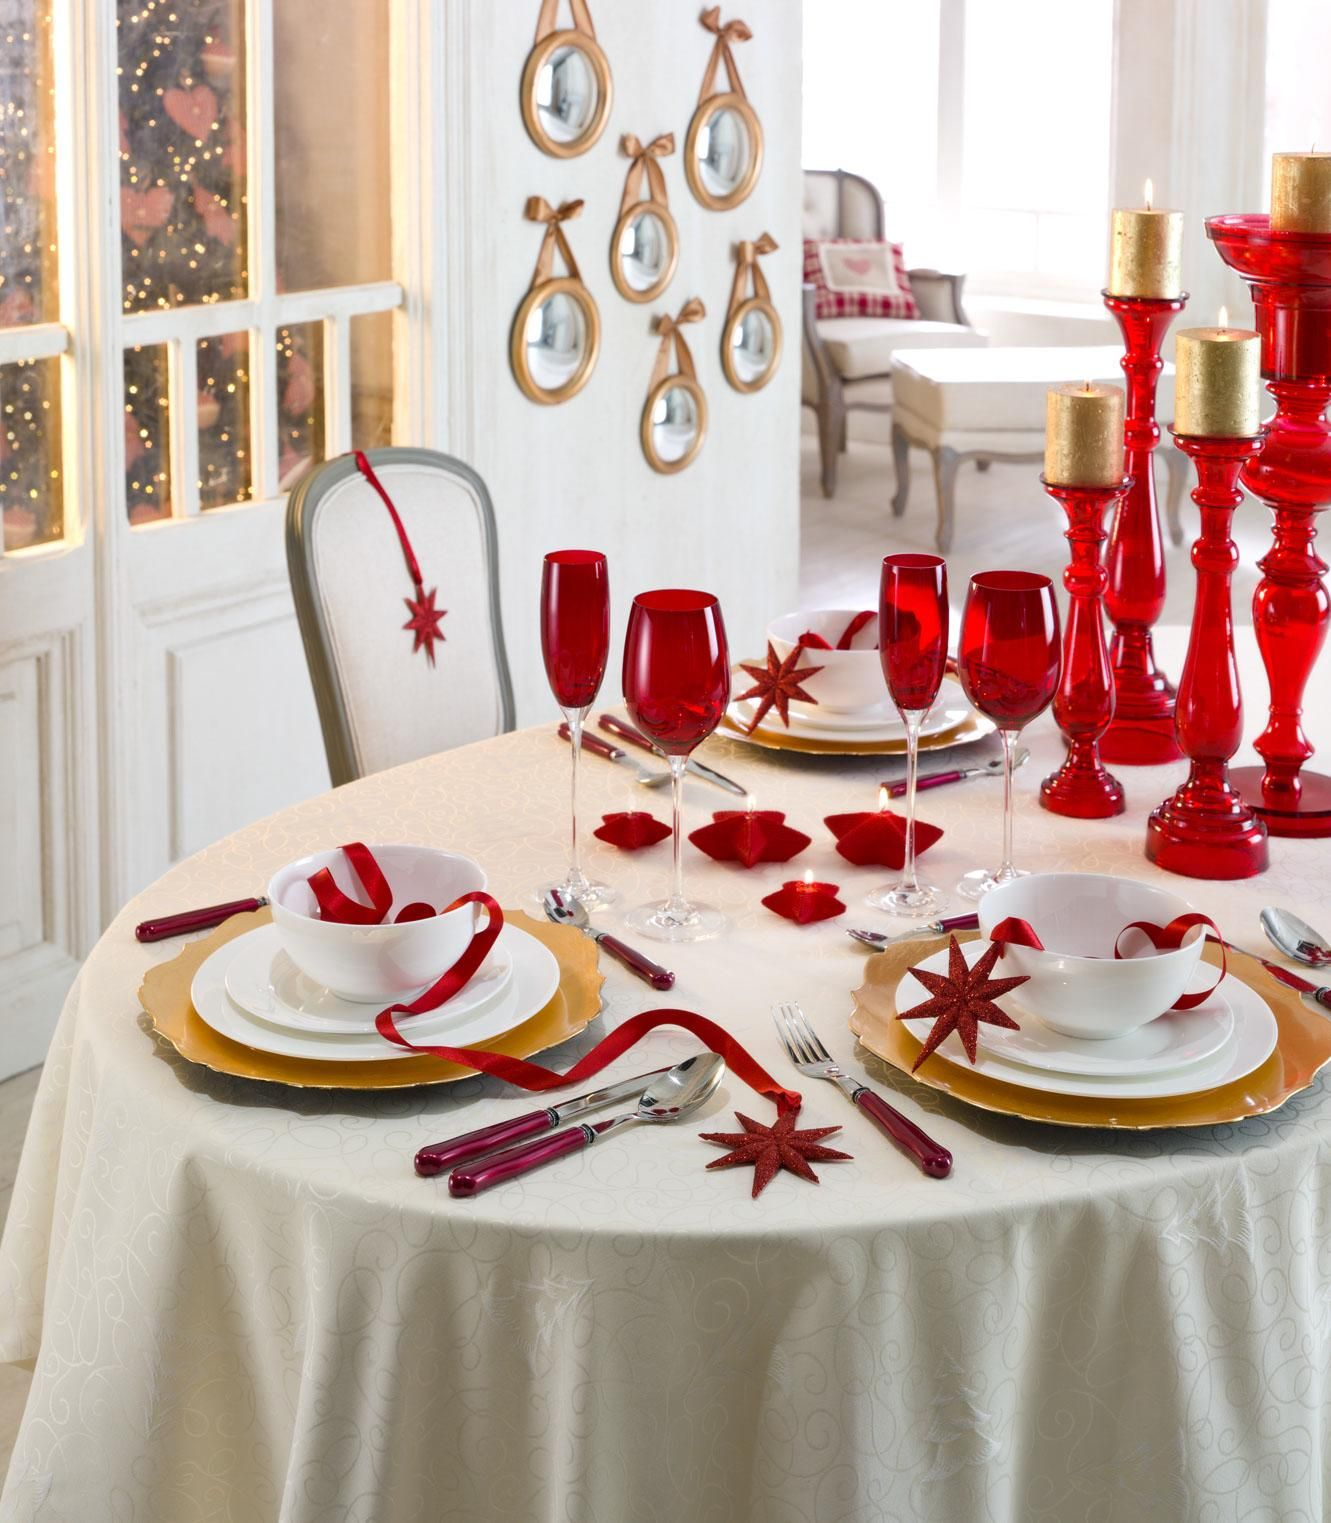 Christmas Place Settings Ideas